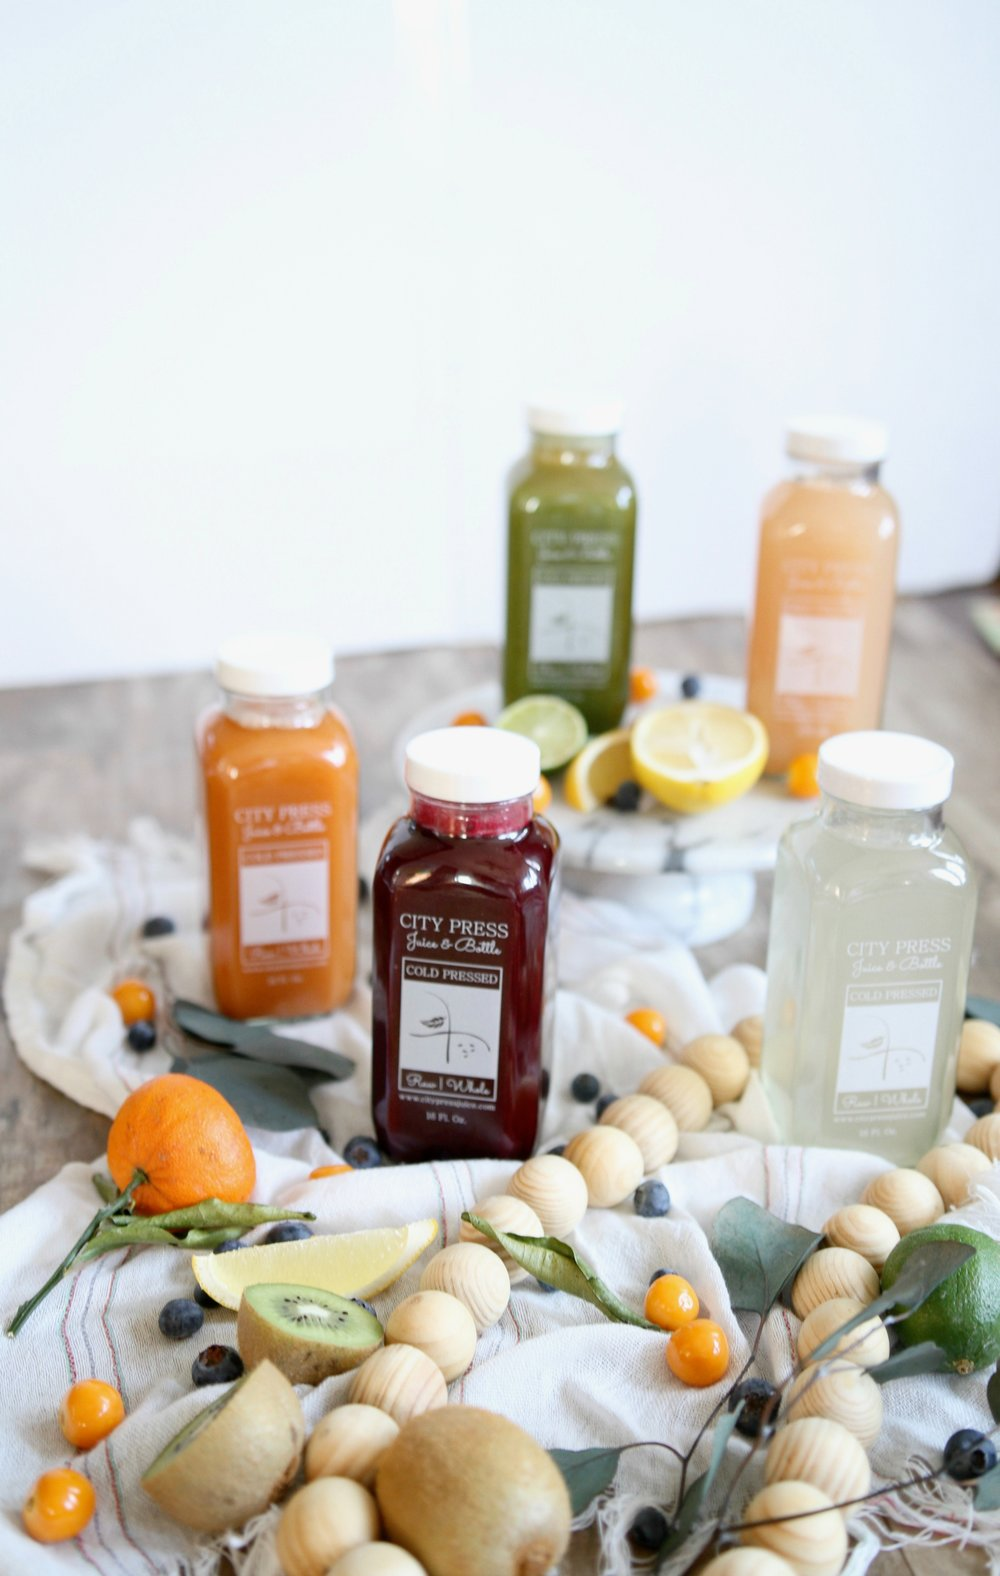 3 Day Juice Cleanse. the nitty gritty of a three day juice cleanse.. Having friends that are equally as adventurous is a key to having more crazy experiences. With that being said I will tell you all the deets of my three-day juice cleanse. It all started when my friend said she was going to do a juice cleanse…